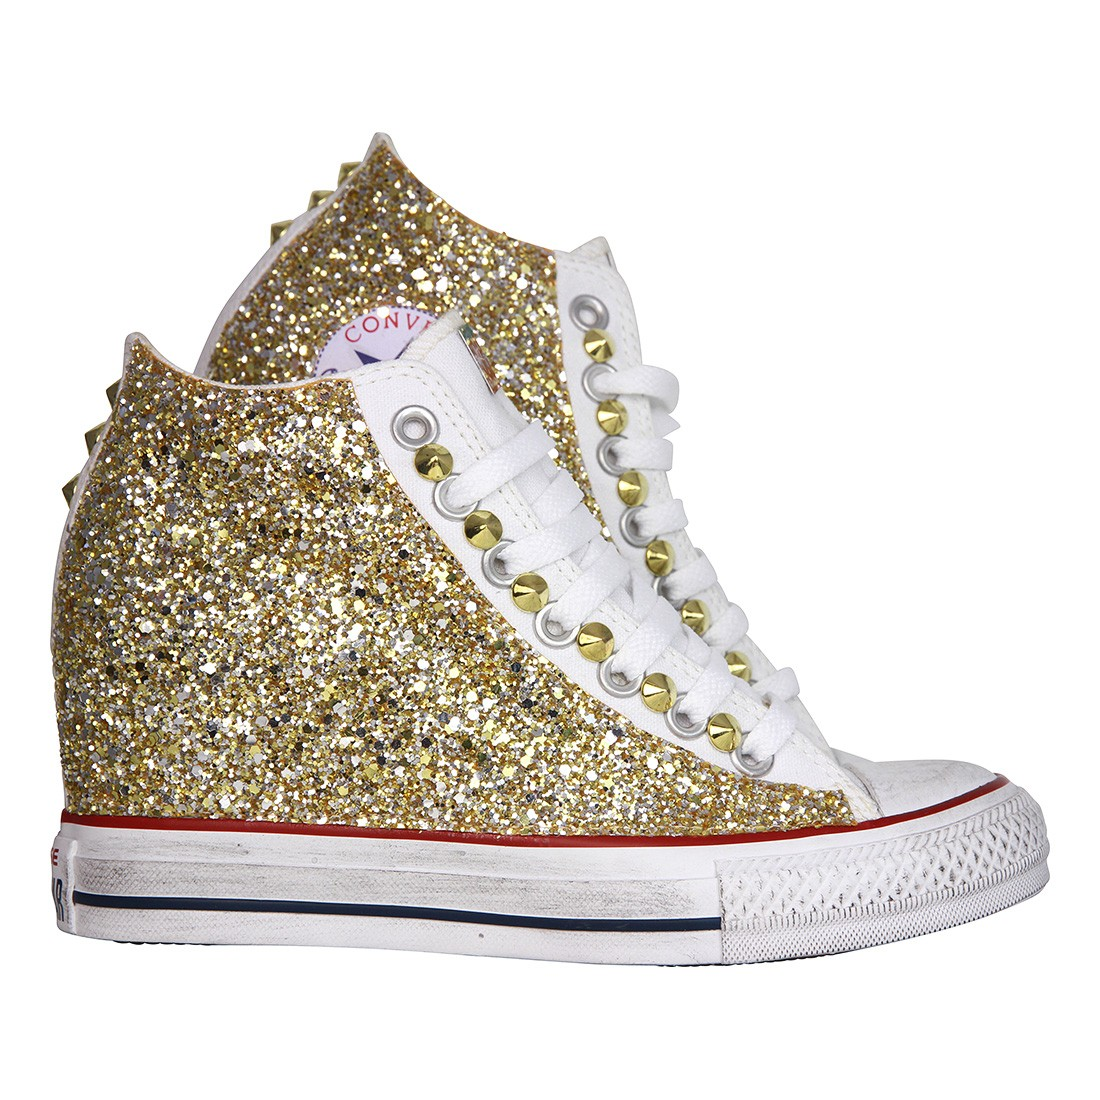 converse all star con rialzo interno